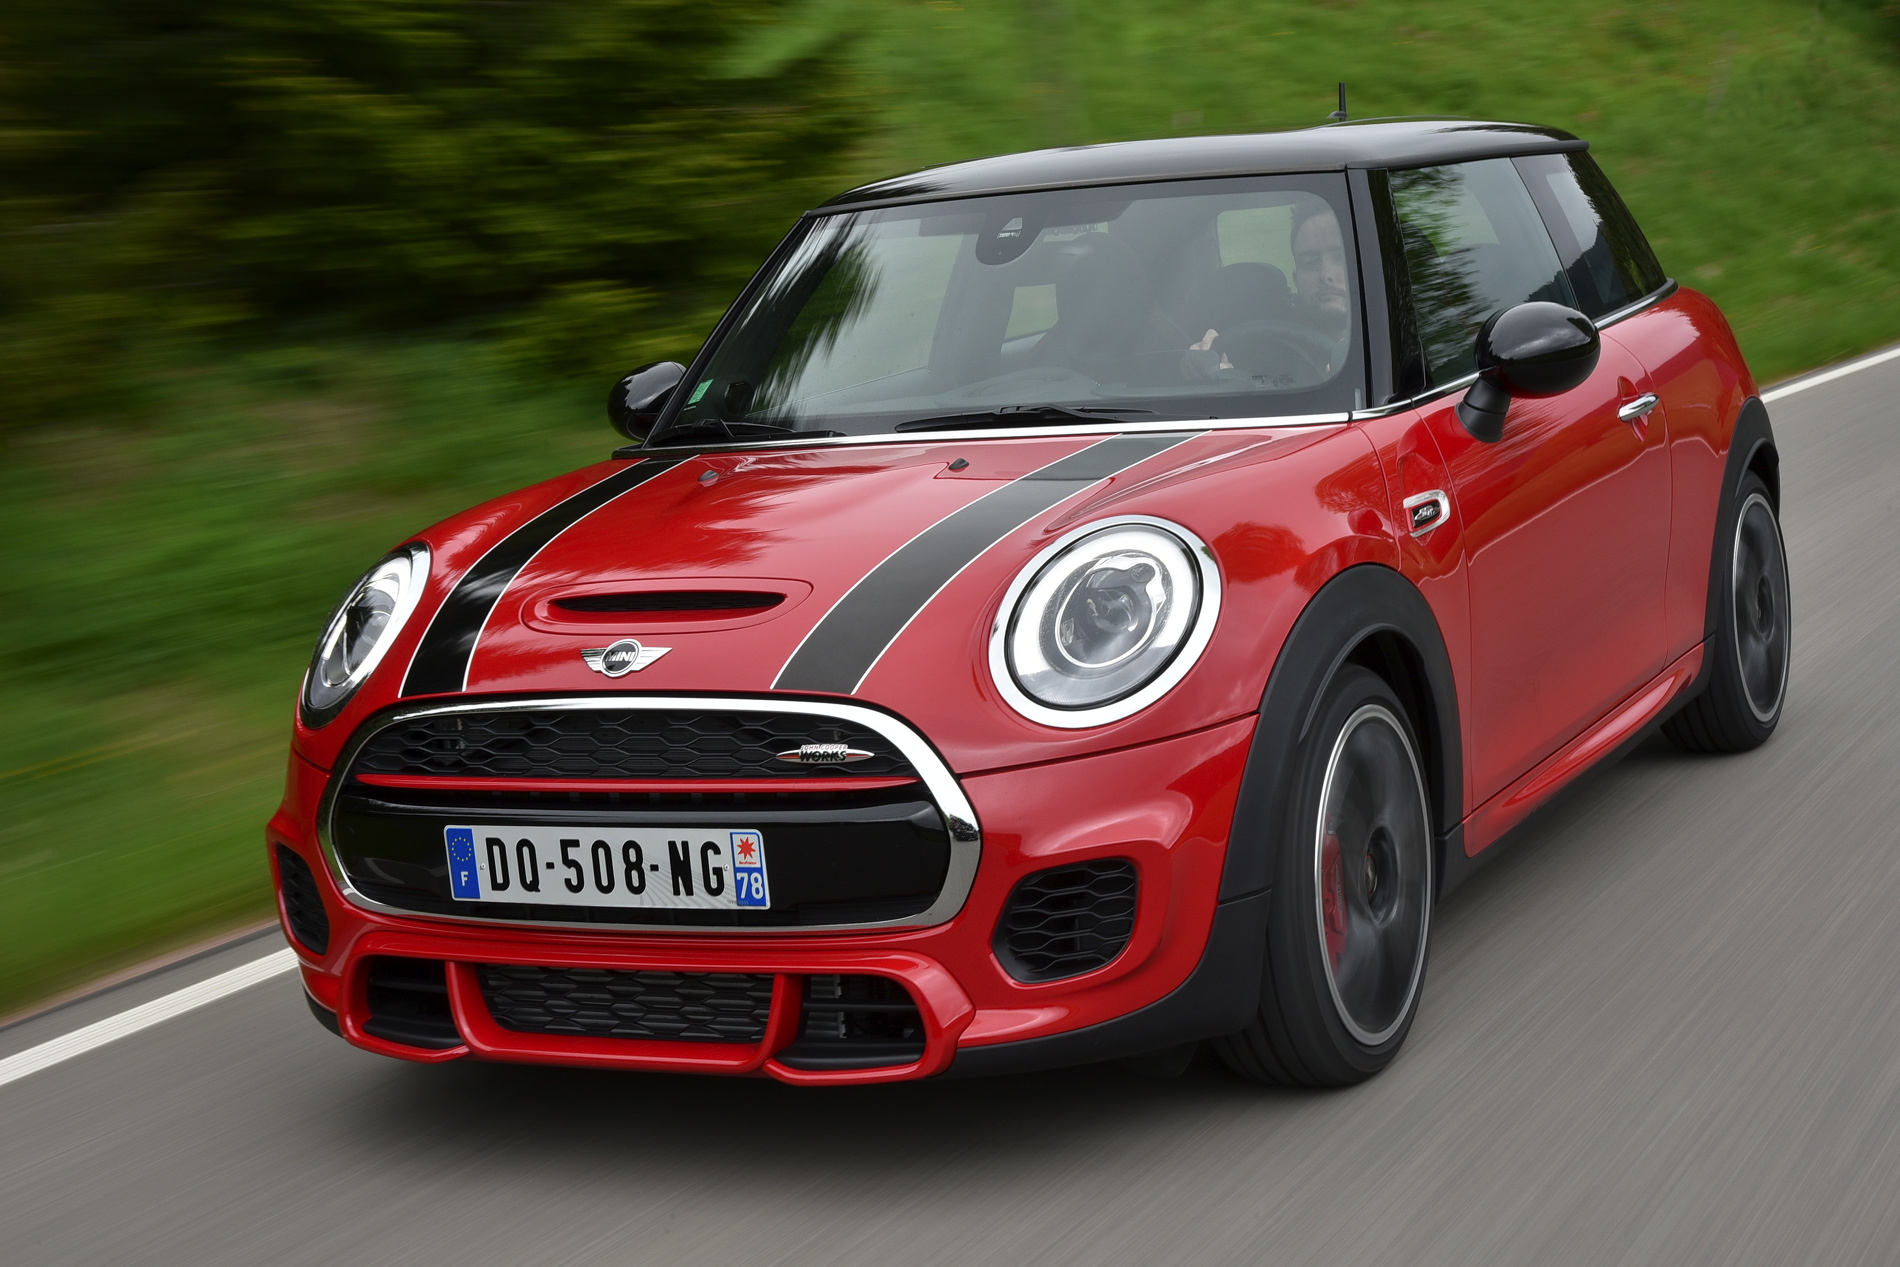 Mini John Cooper Works F56 In Chili Red